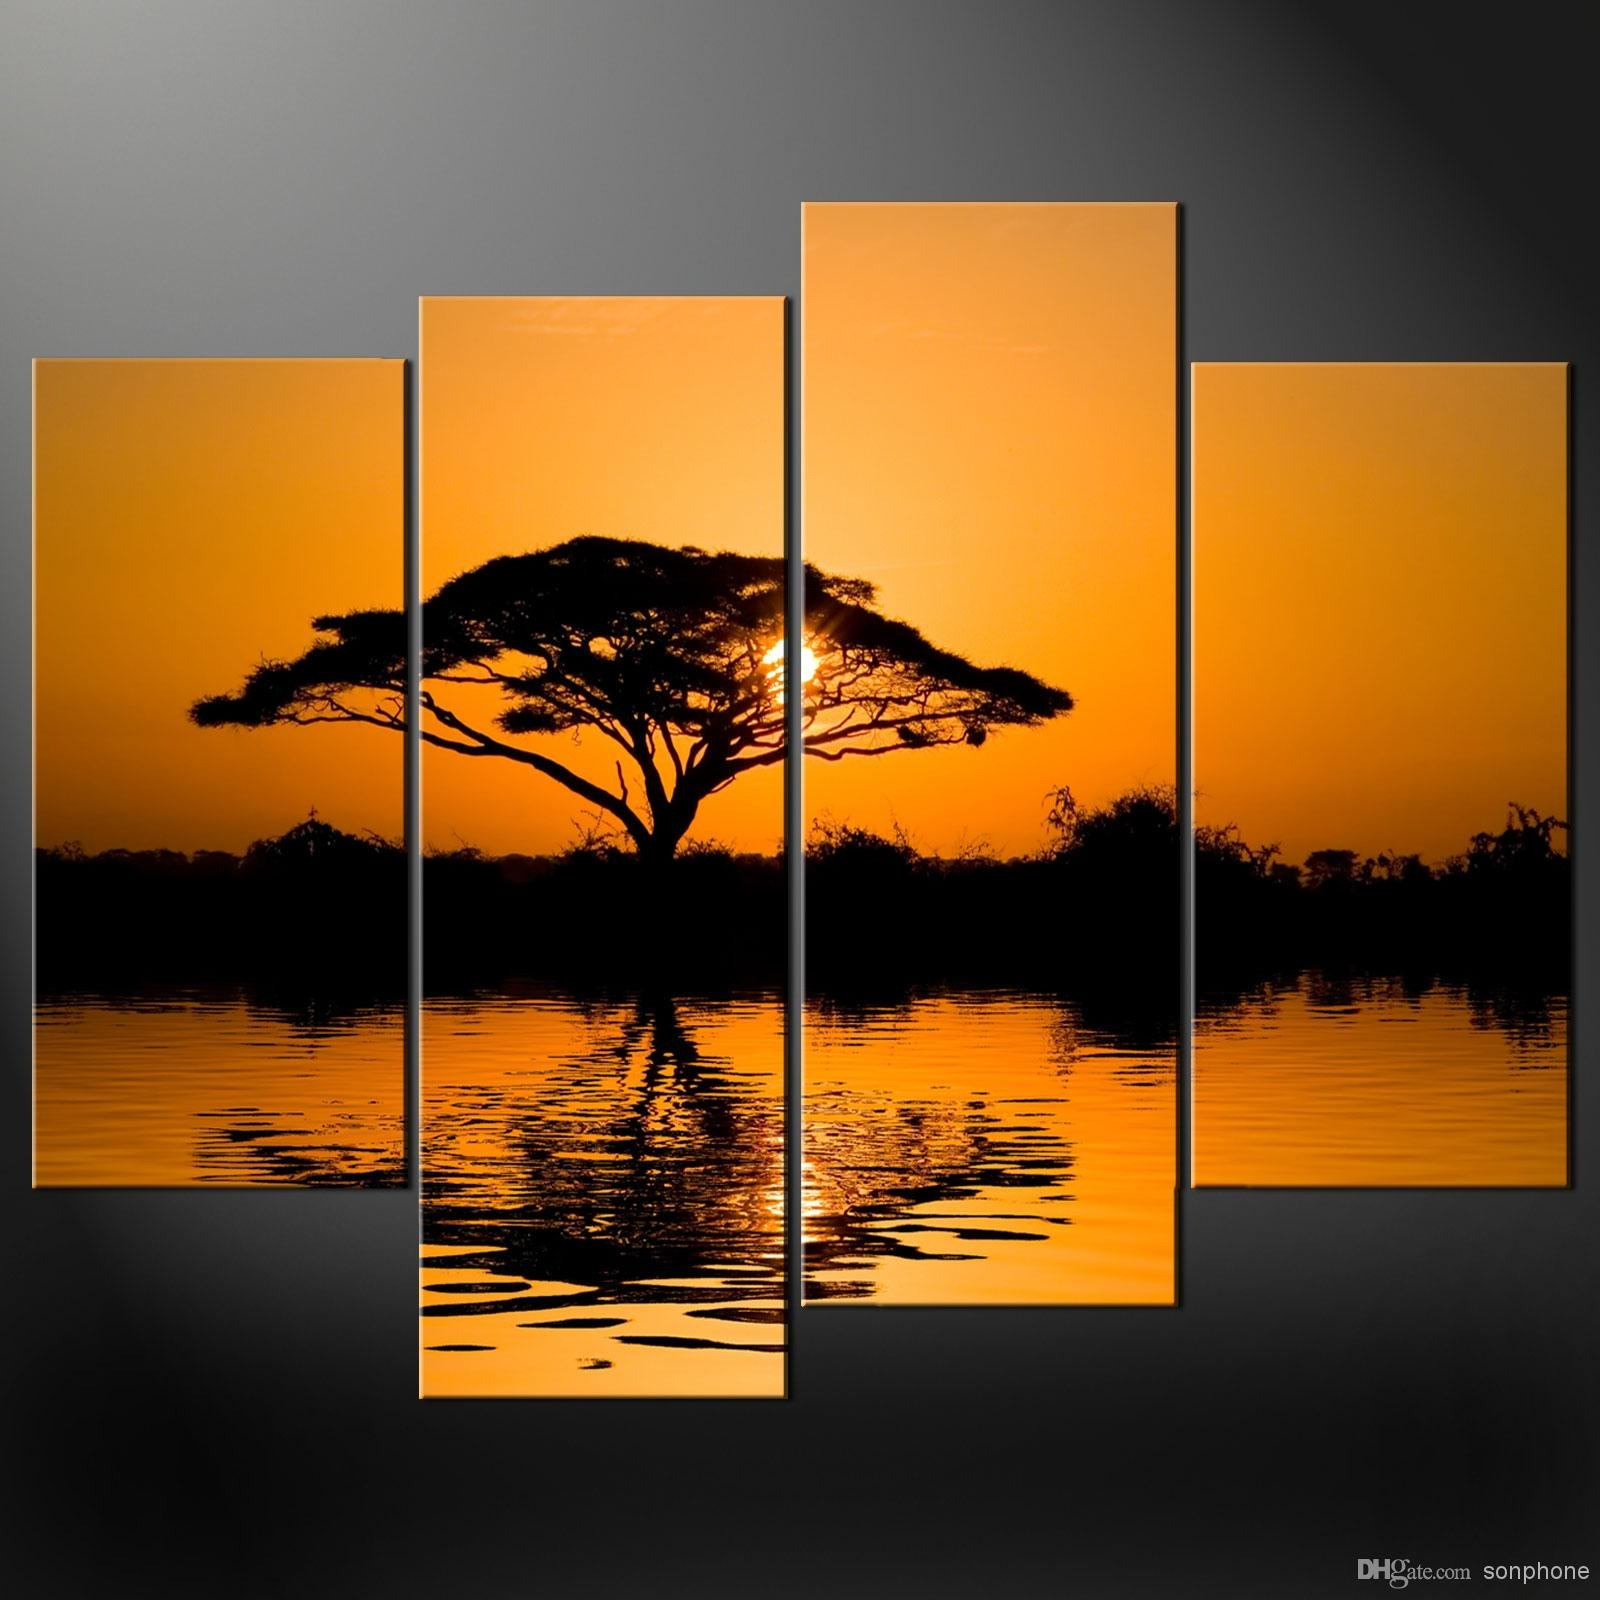 Framed 4 Panel Large African Wall Art Decor Modern Sunset Oil Pertaining To Most Recently Released African Wall Art (View 3 of 15)